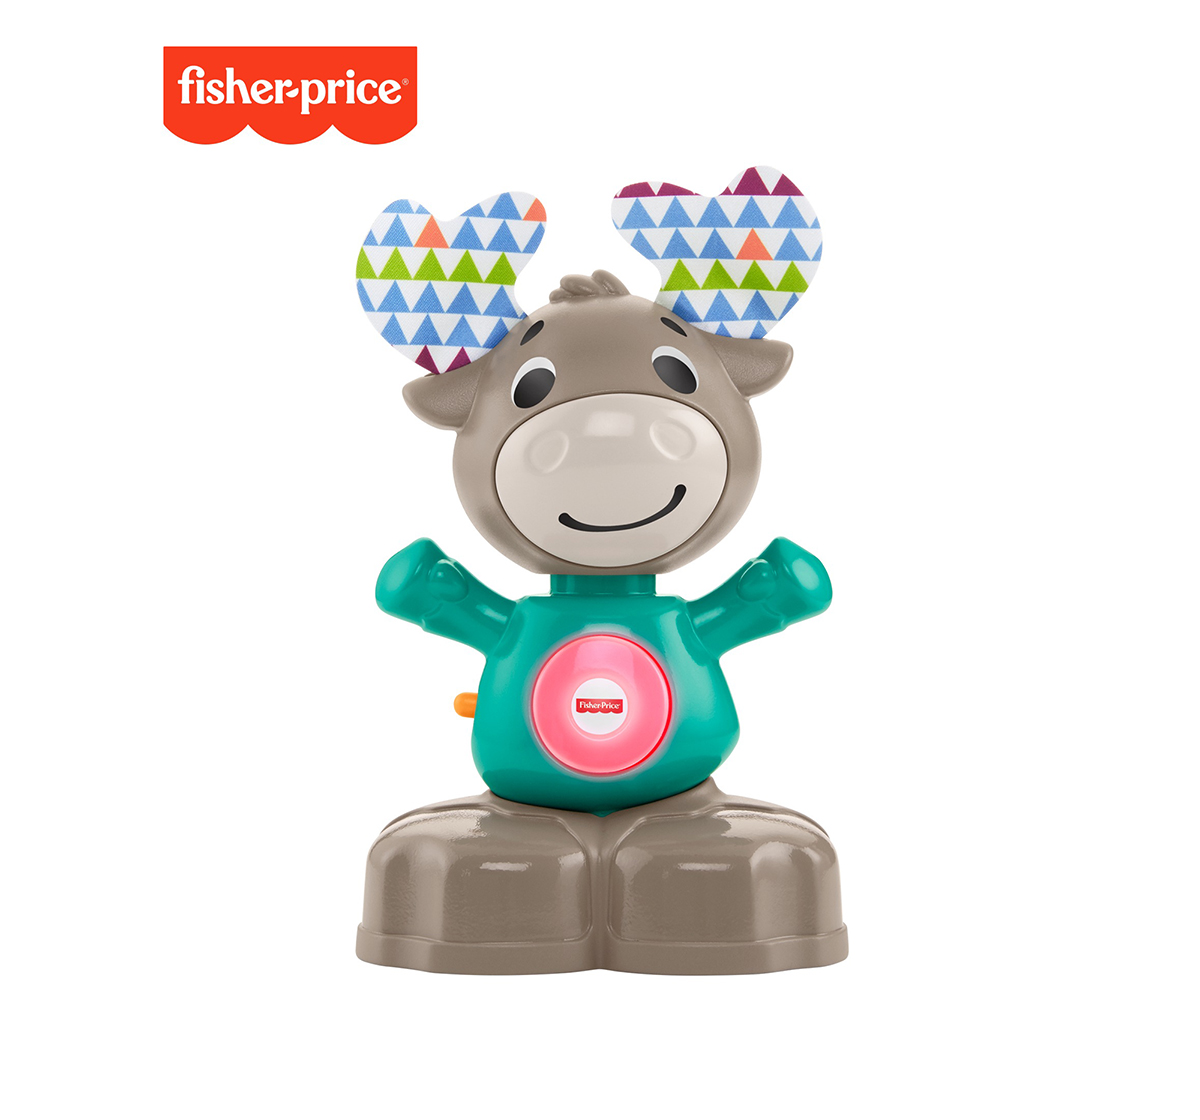 Fisher-Price | Fisher-Price Linkimals Musical Moose, Learning Toys for Kids age 9M+